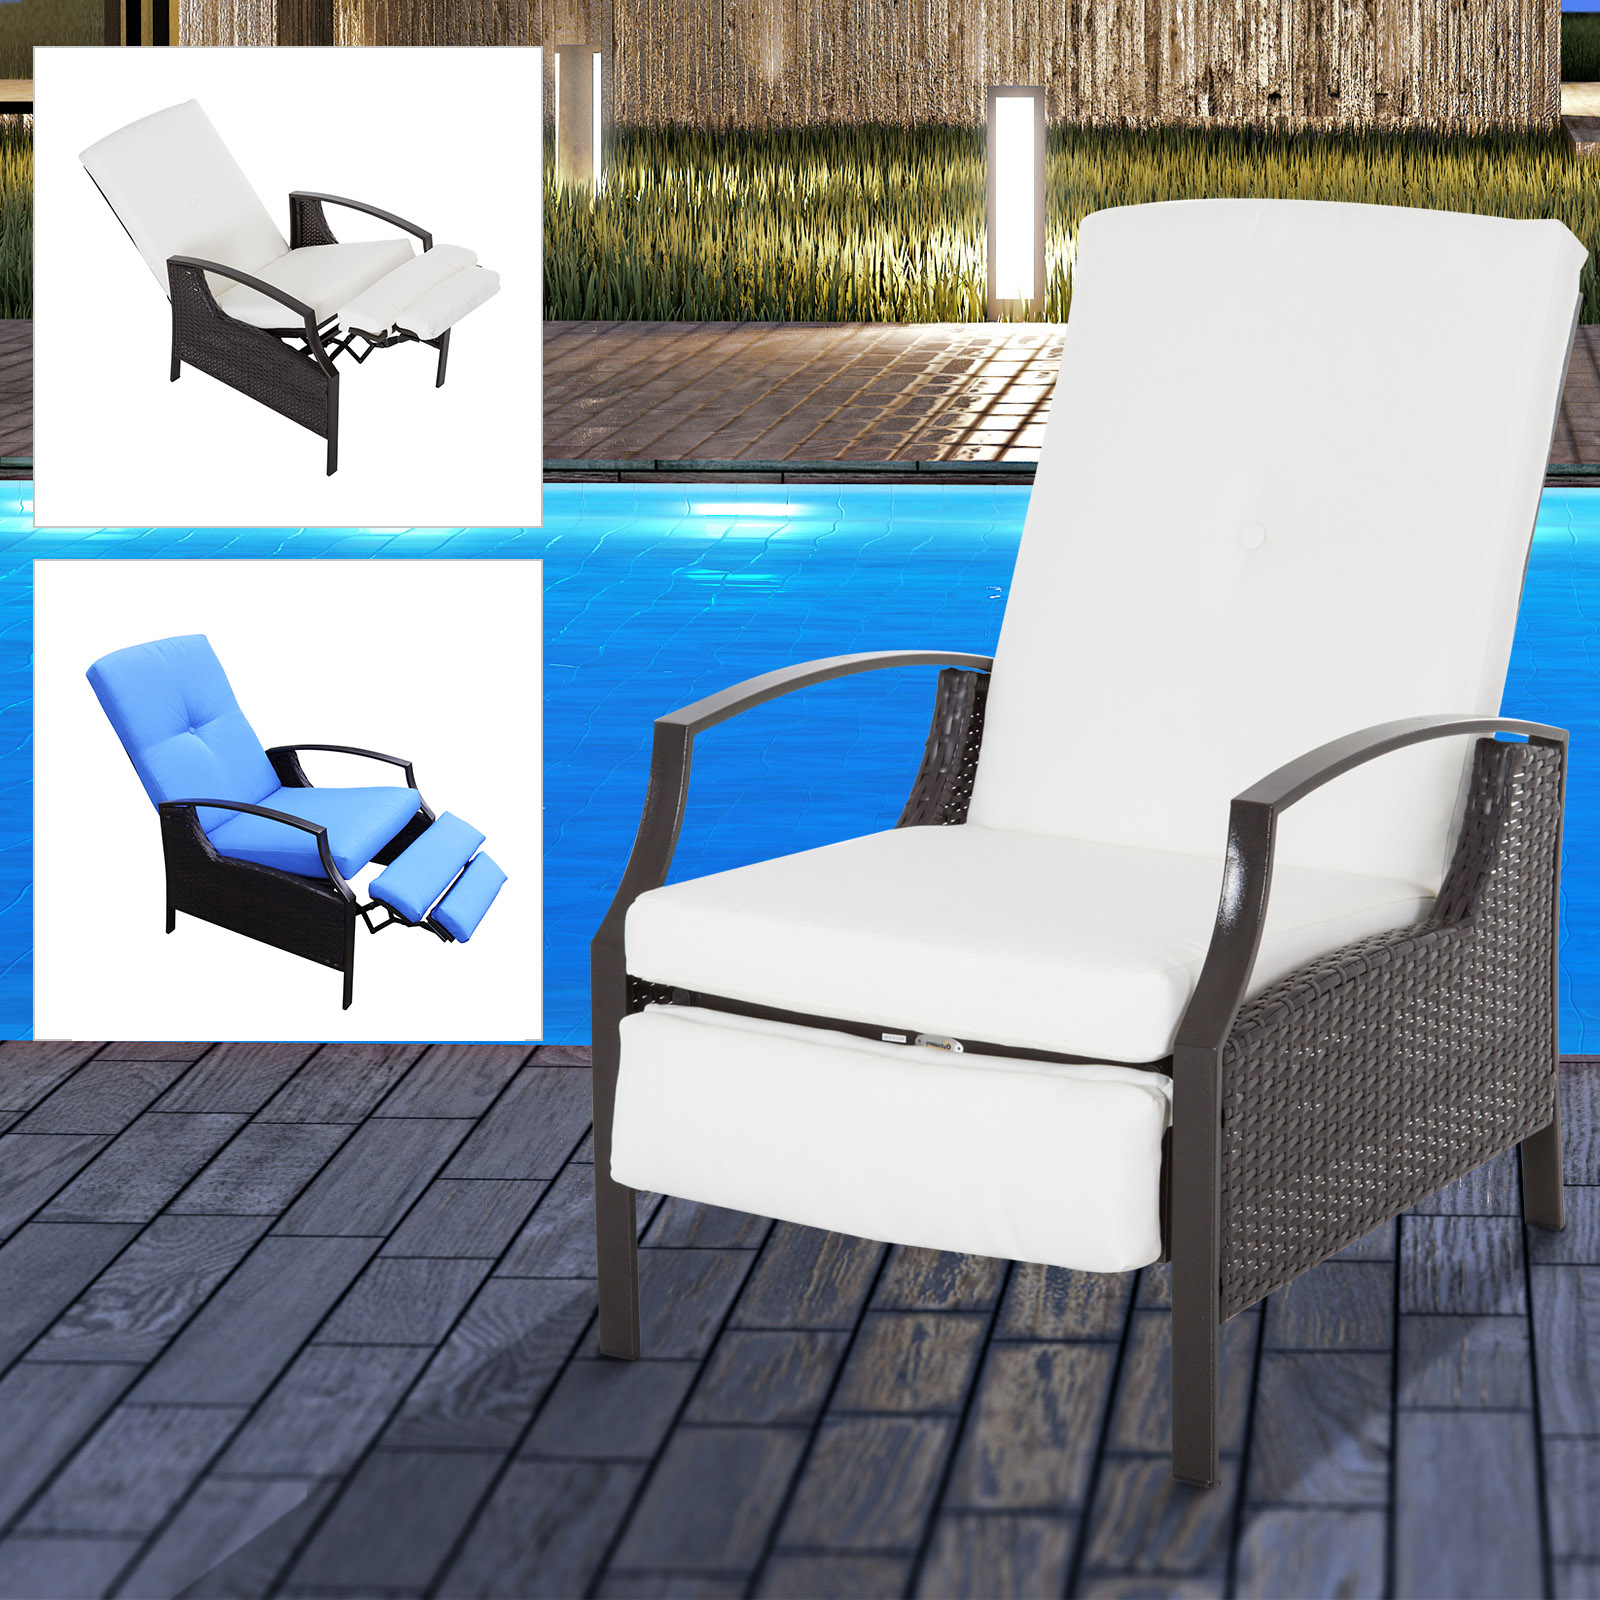 Well Liked Outdoor Adjustable Rattan Wicker Recliner Chairs With Cushion Within Details About Adjustable Wicker Recliner Cushion Chair Pool Chaise Patio Lounge Outdoor (View 9 of 25)